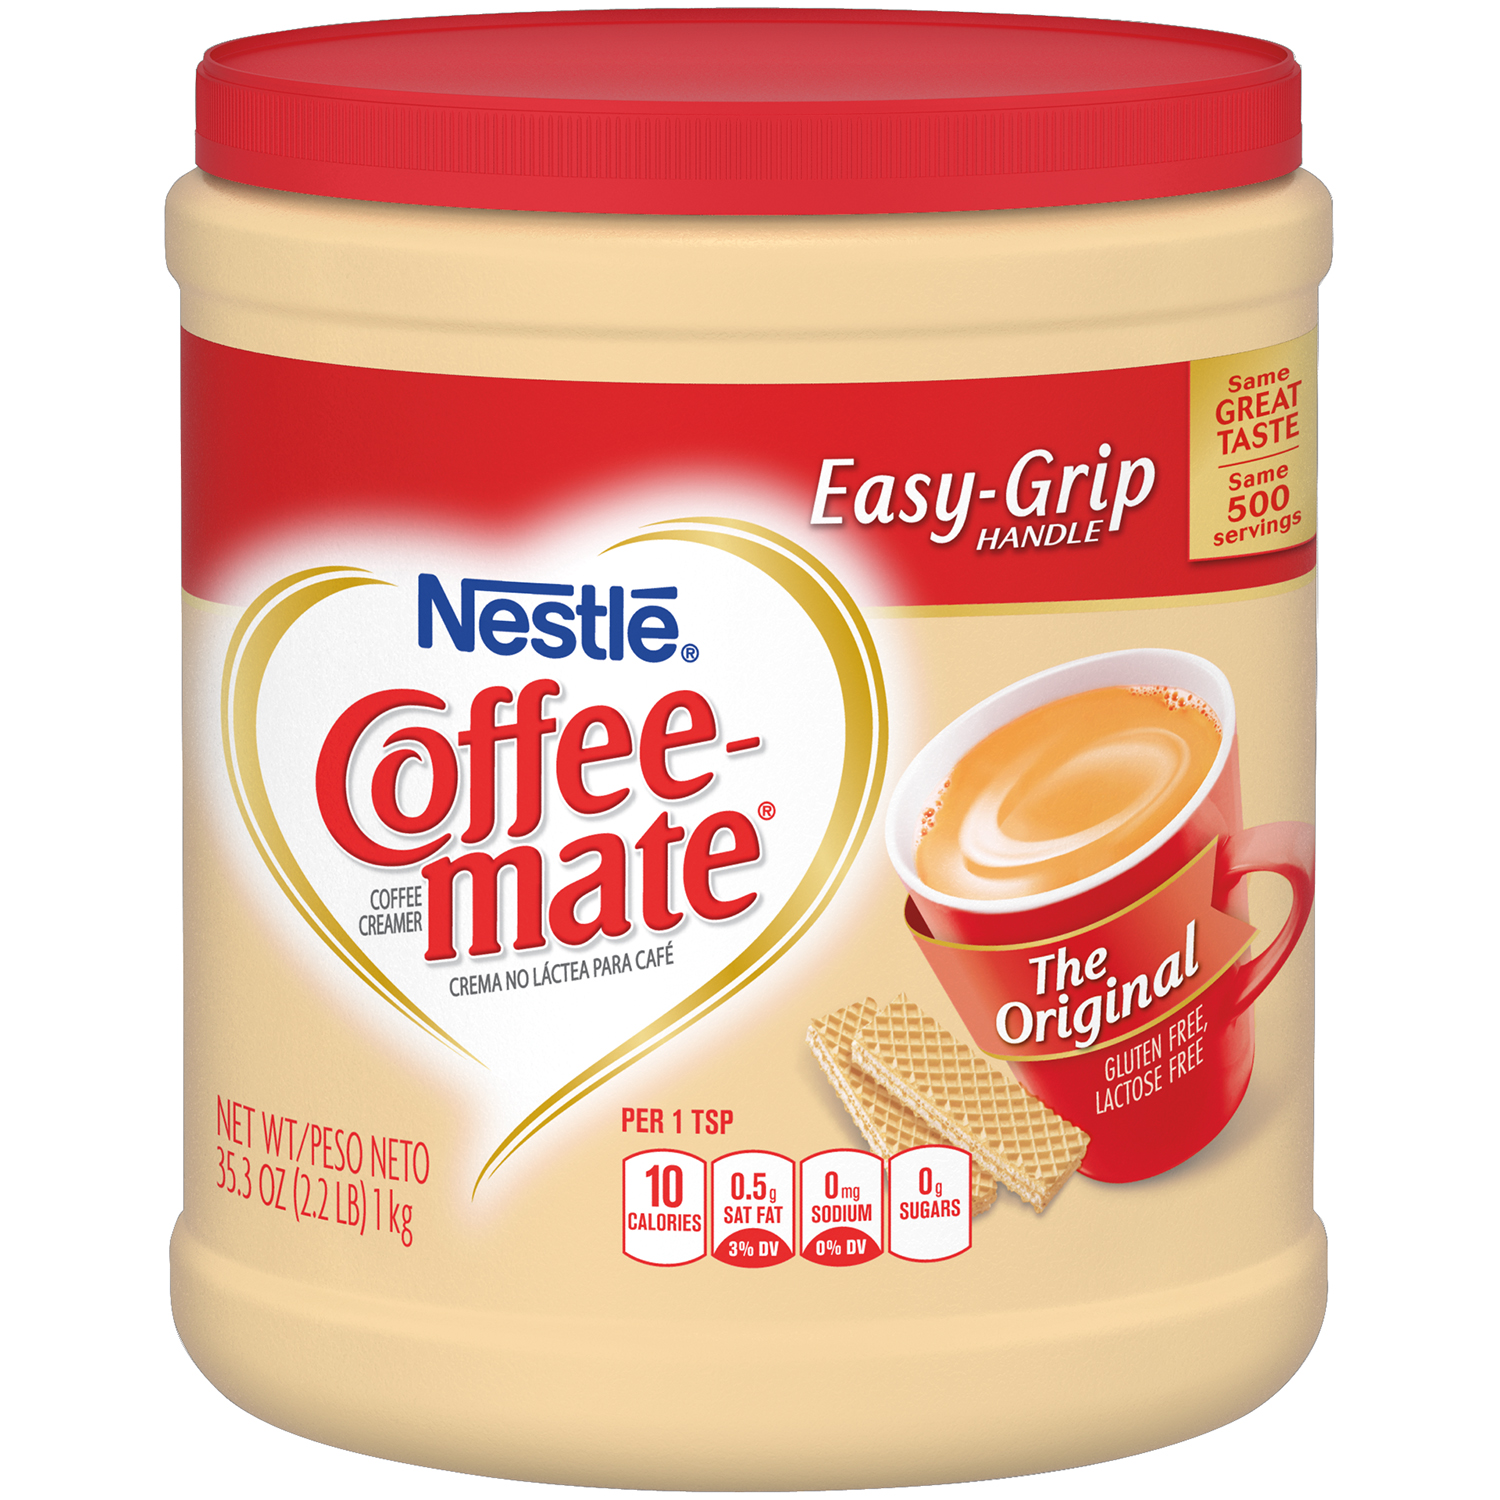 COFFEE-MATE Original Powder Coffee Creamer 35.3 oz. Canister